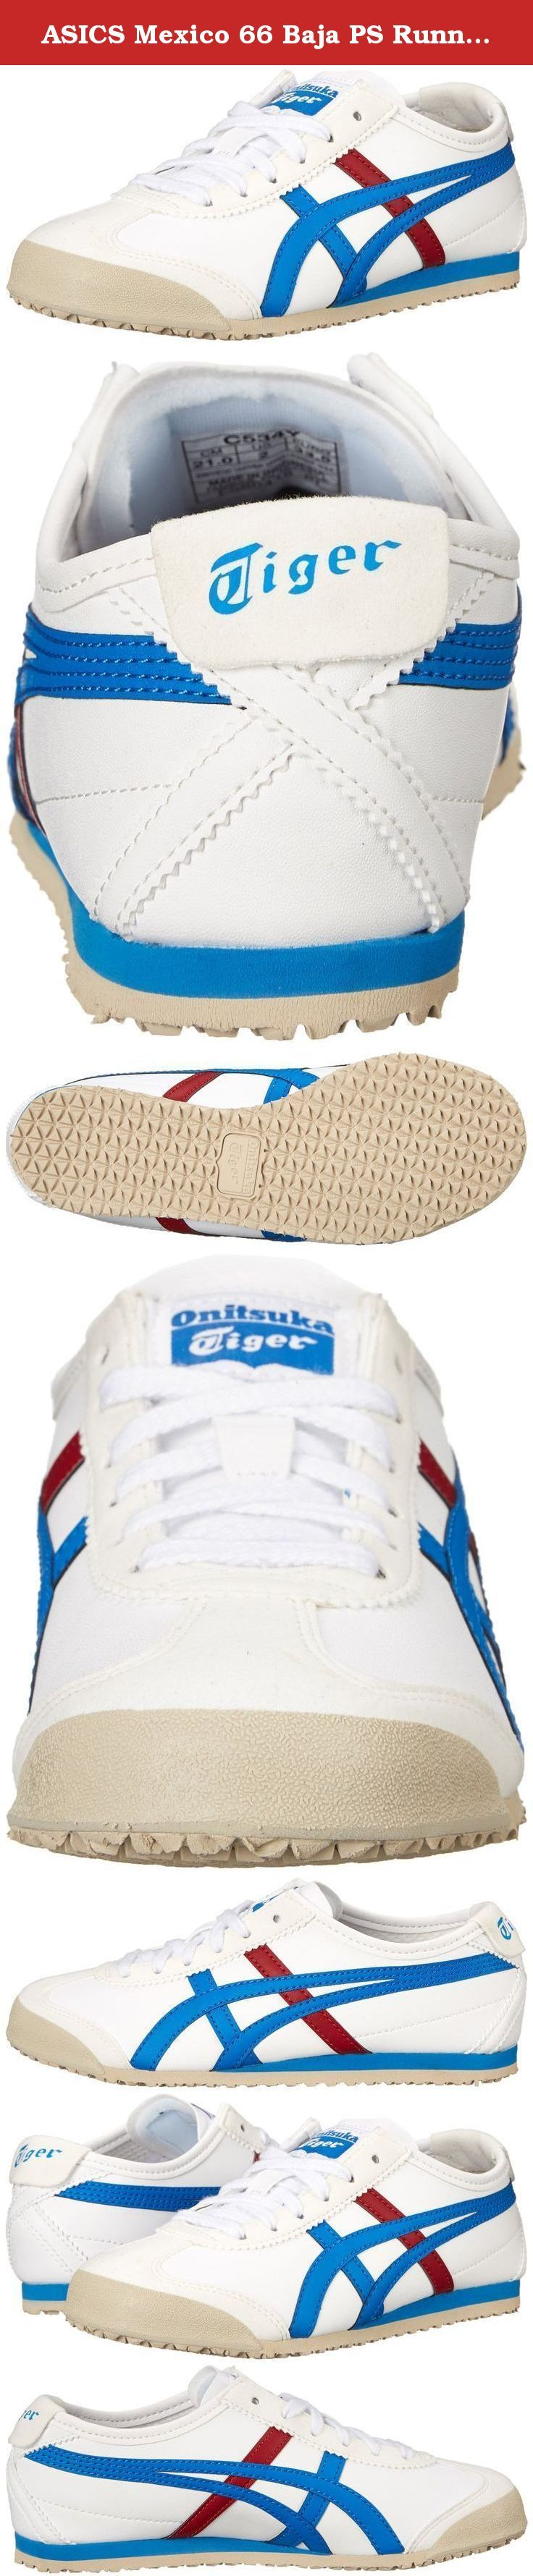 ASICS Mexico 66 Baja PS Running Shoe (Toddler/Little Kid), White/Mid Blue, 13 M US Little Kid. The iconic Mexico 66 was born in 1966 and debuted at the 1968 Olympic games pre-trials in Mexico with a premium white leather, stitched with red and blue tiger stripes. Today, the classic runner has been reawakened and remains to be the most popular shoe in the Onitsuka Tiger collection. The materials include a unique herringbone textile pattern on the upper and while the tiger stripes are…